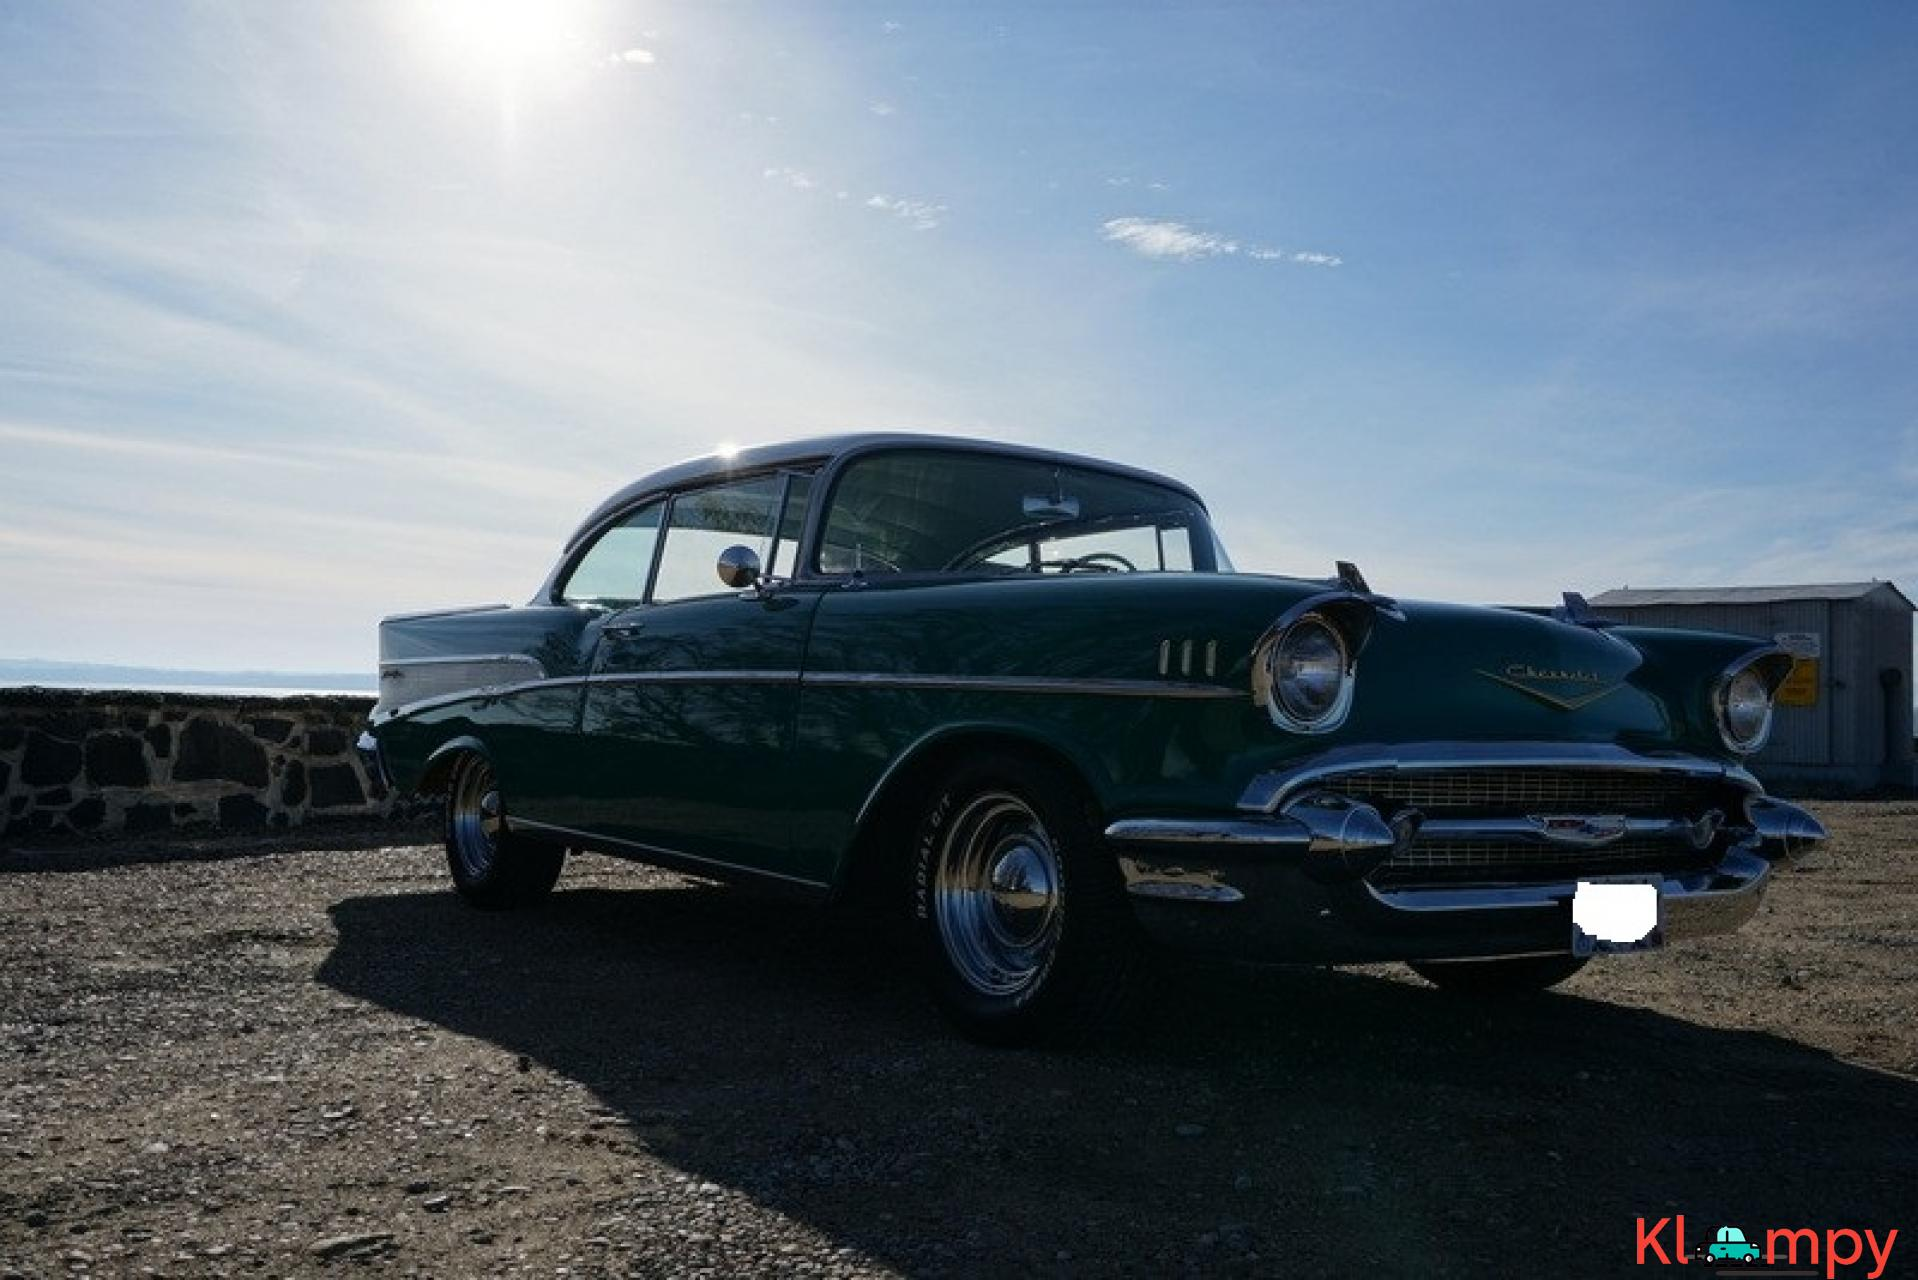 1957 Chevrolet Bel Air 150 210 Hardtop - 12/20